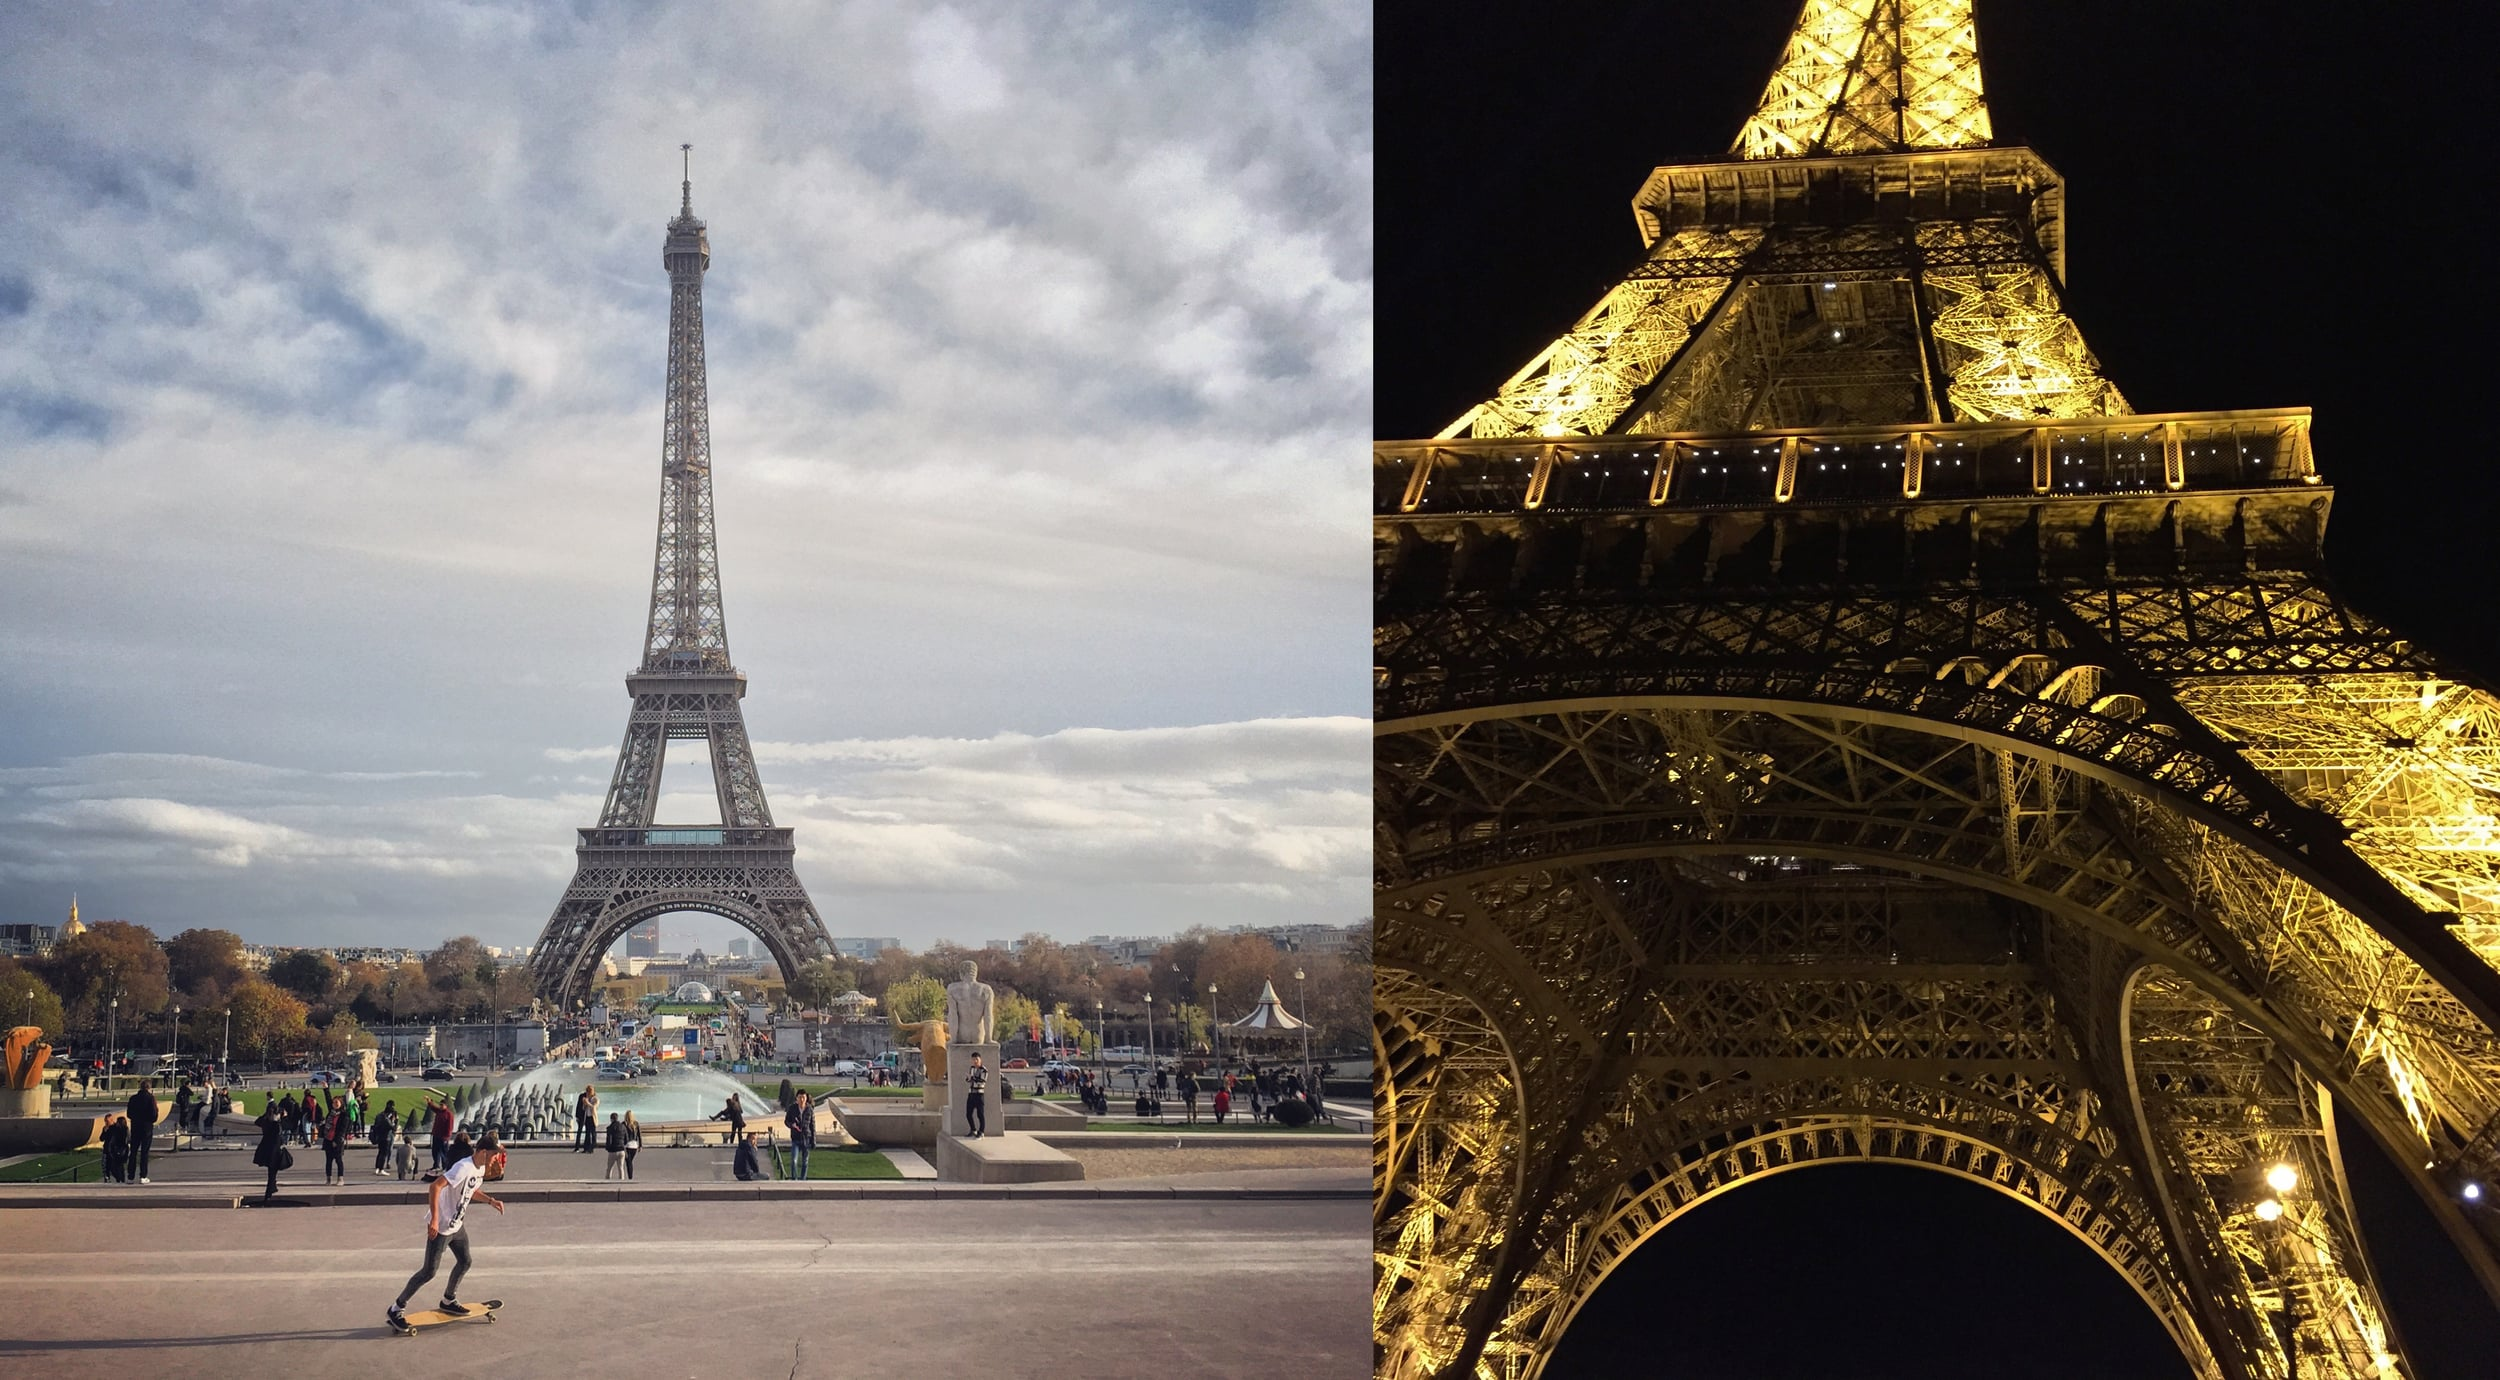 The Eiffel Tower exceeded expectations